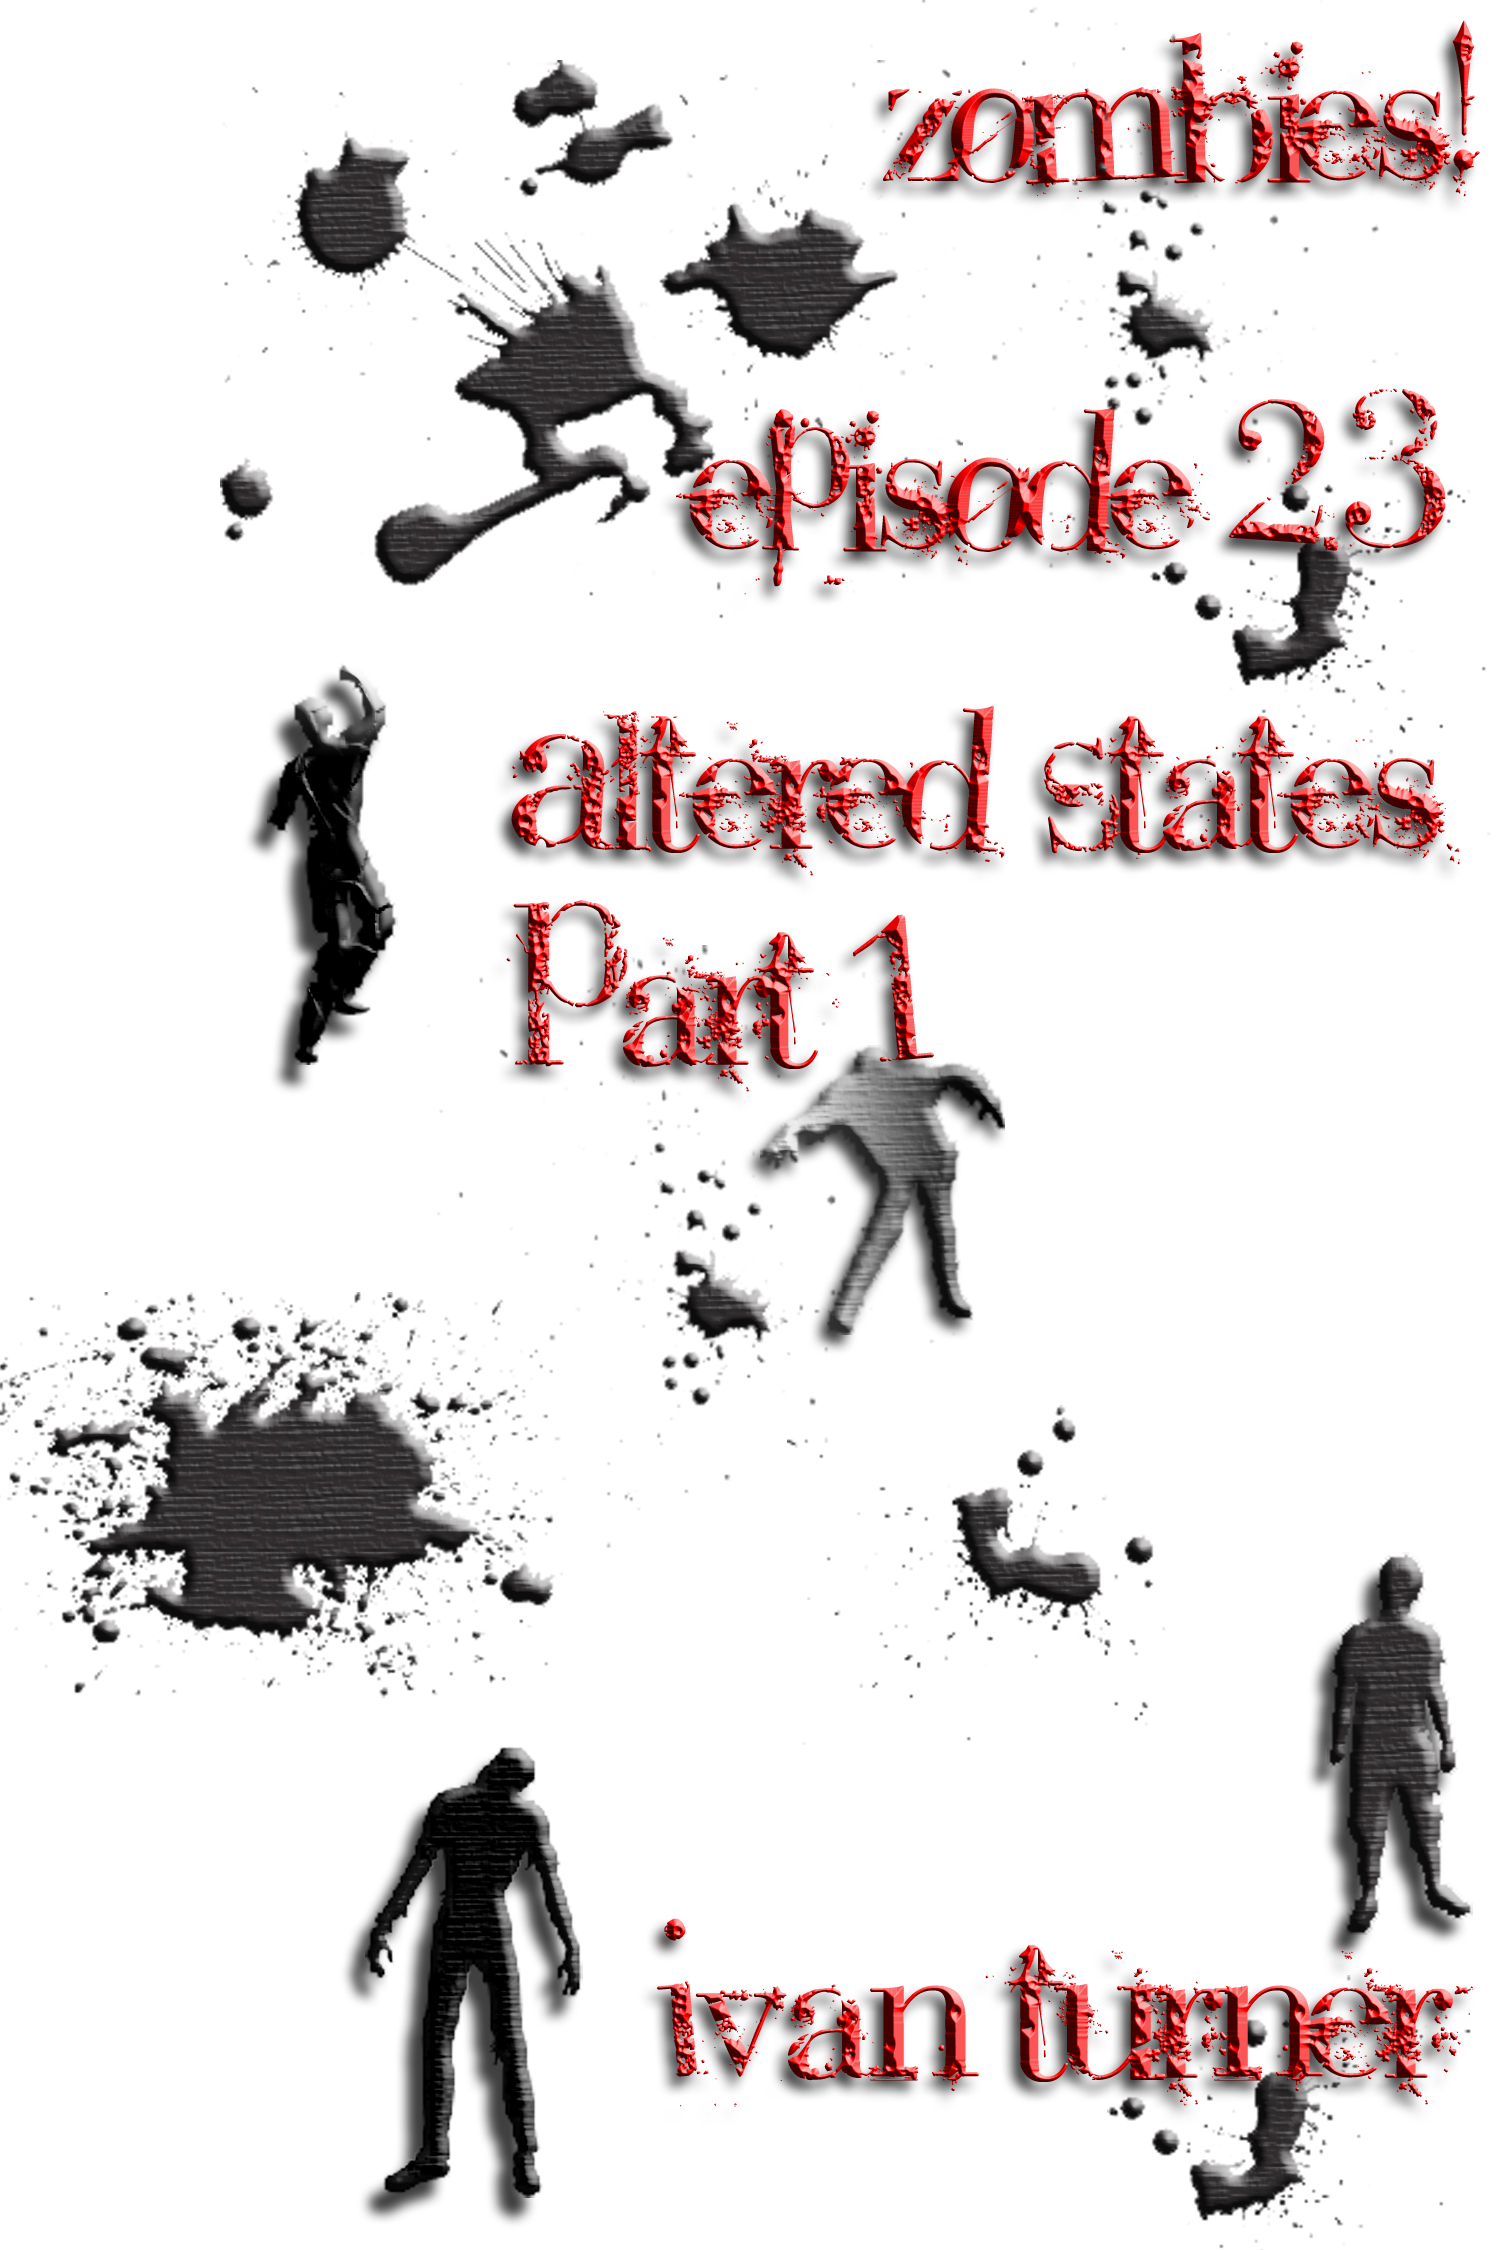 Zombies! Episode 2.3: Altered States Part 1 By: Ivan Turner